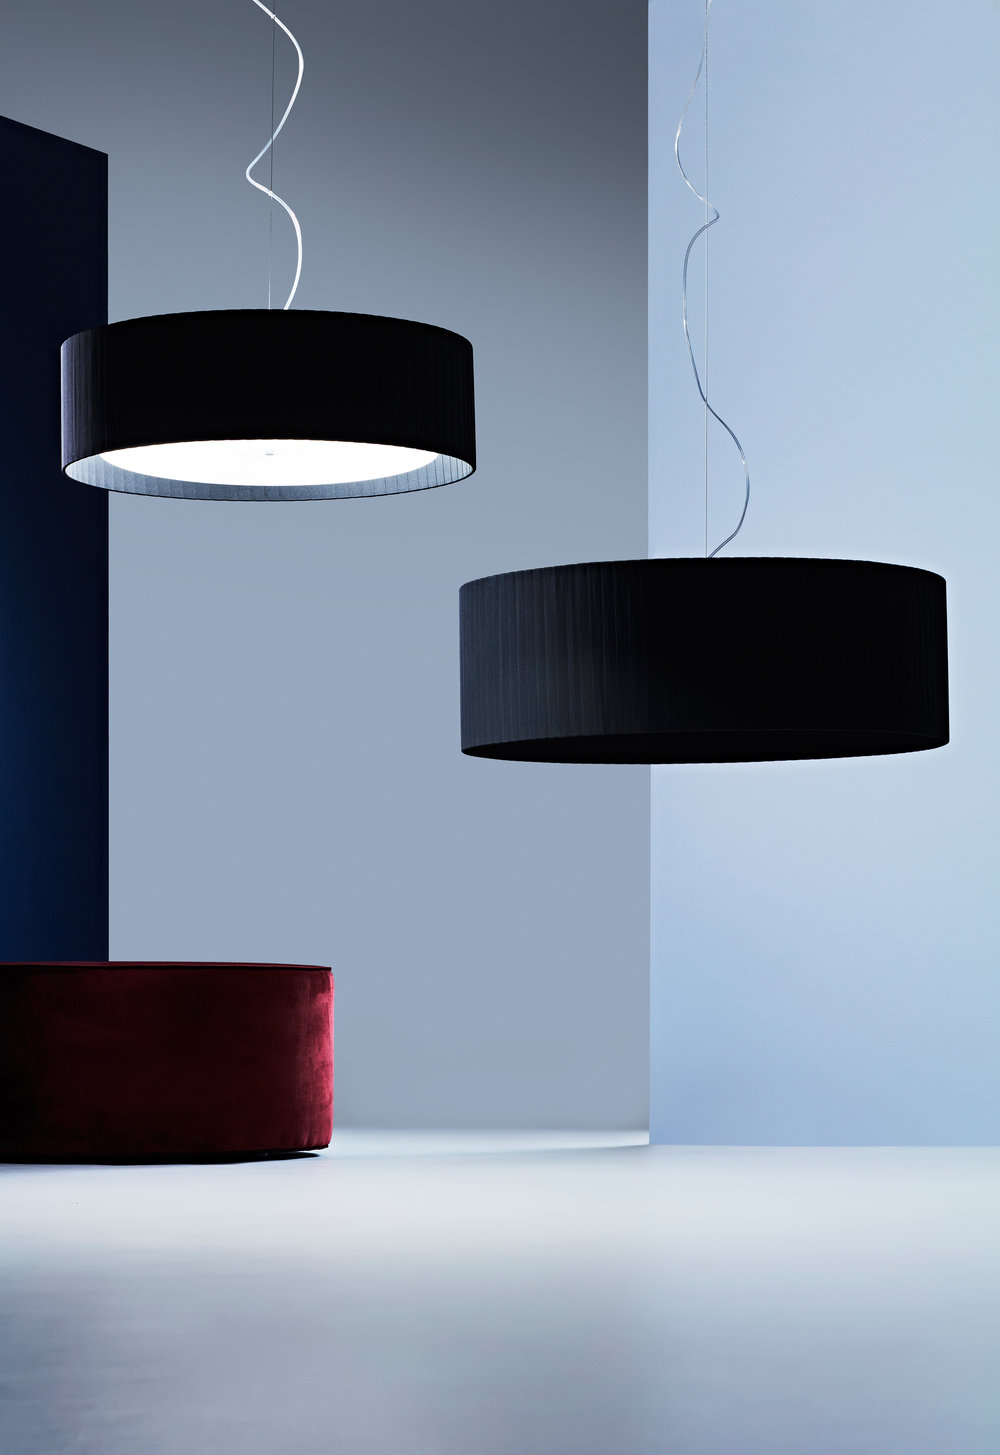 Ism Objects Pendant Lighting Designs Reimagined Max You